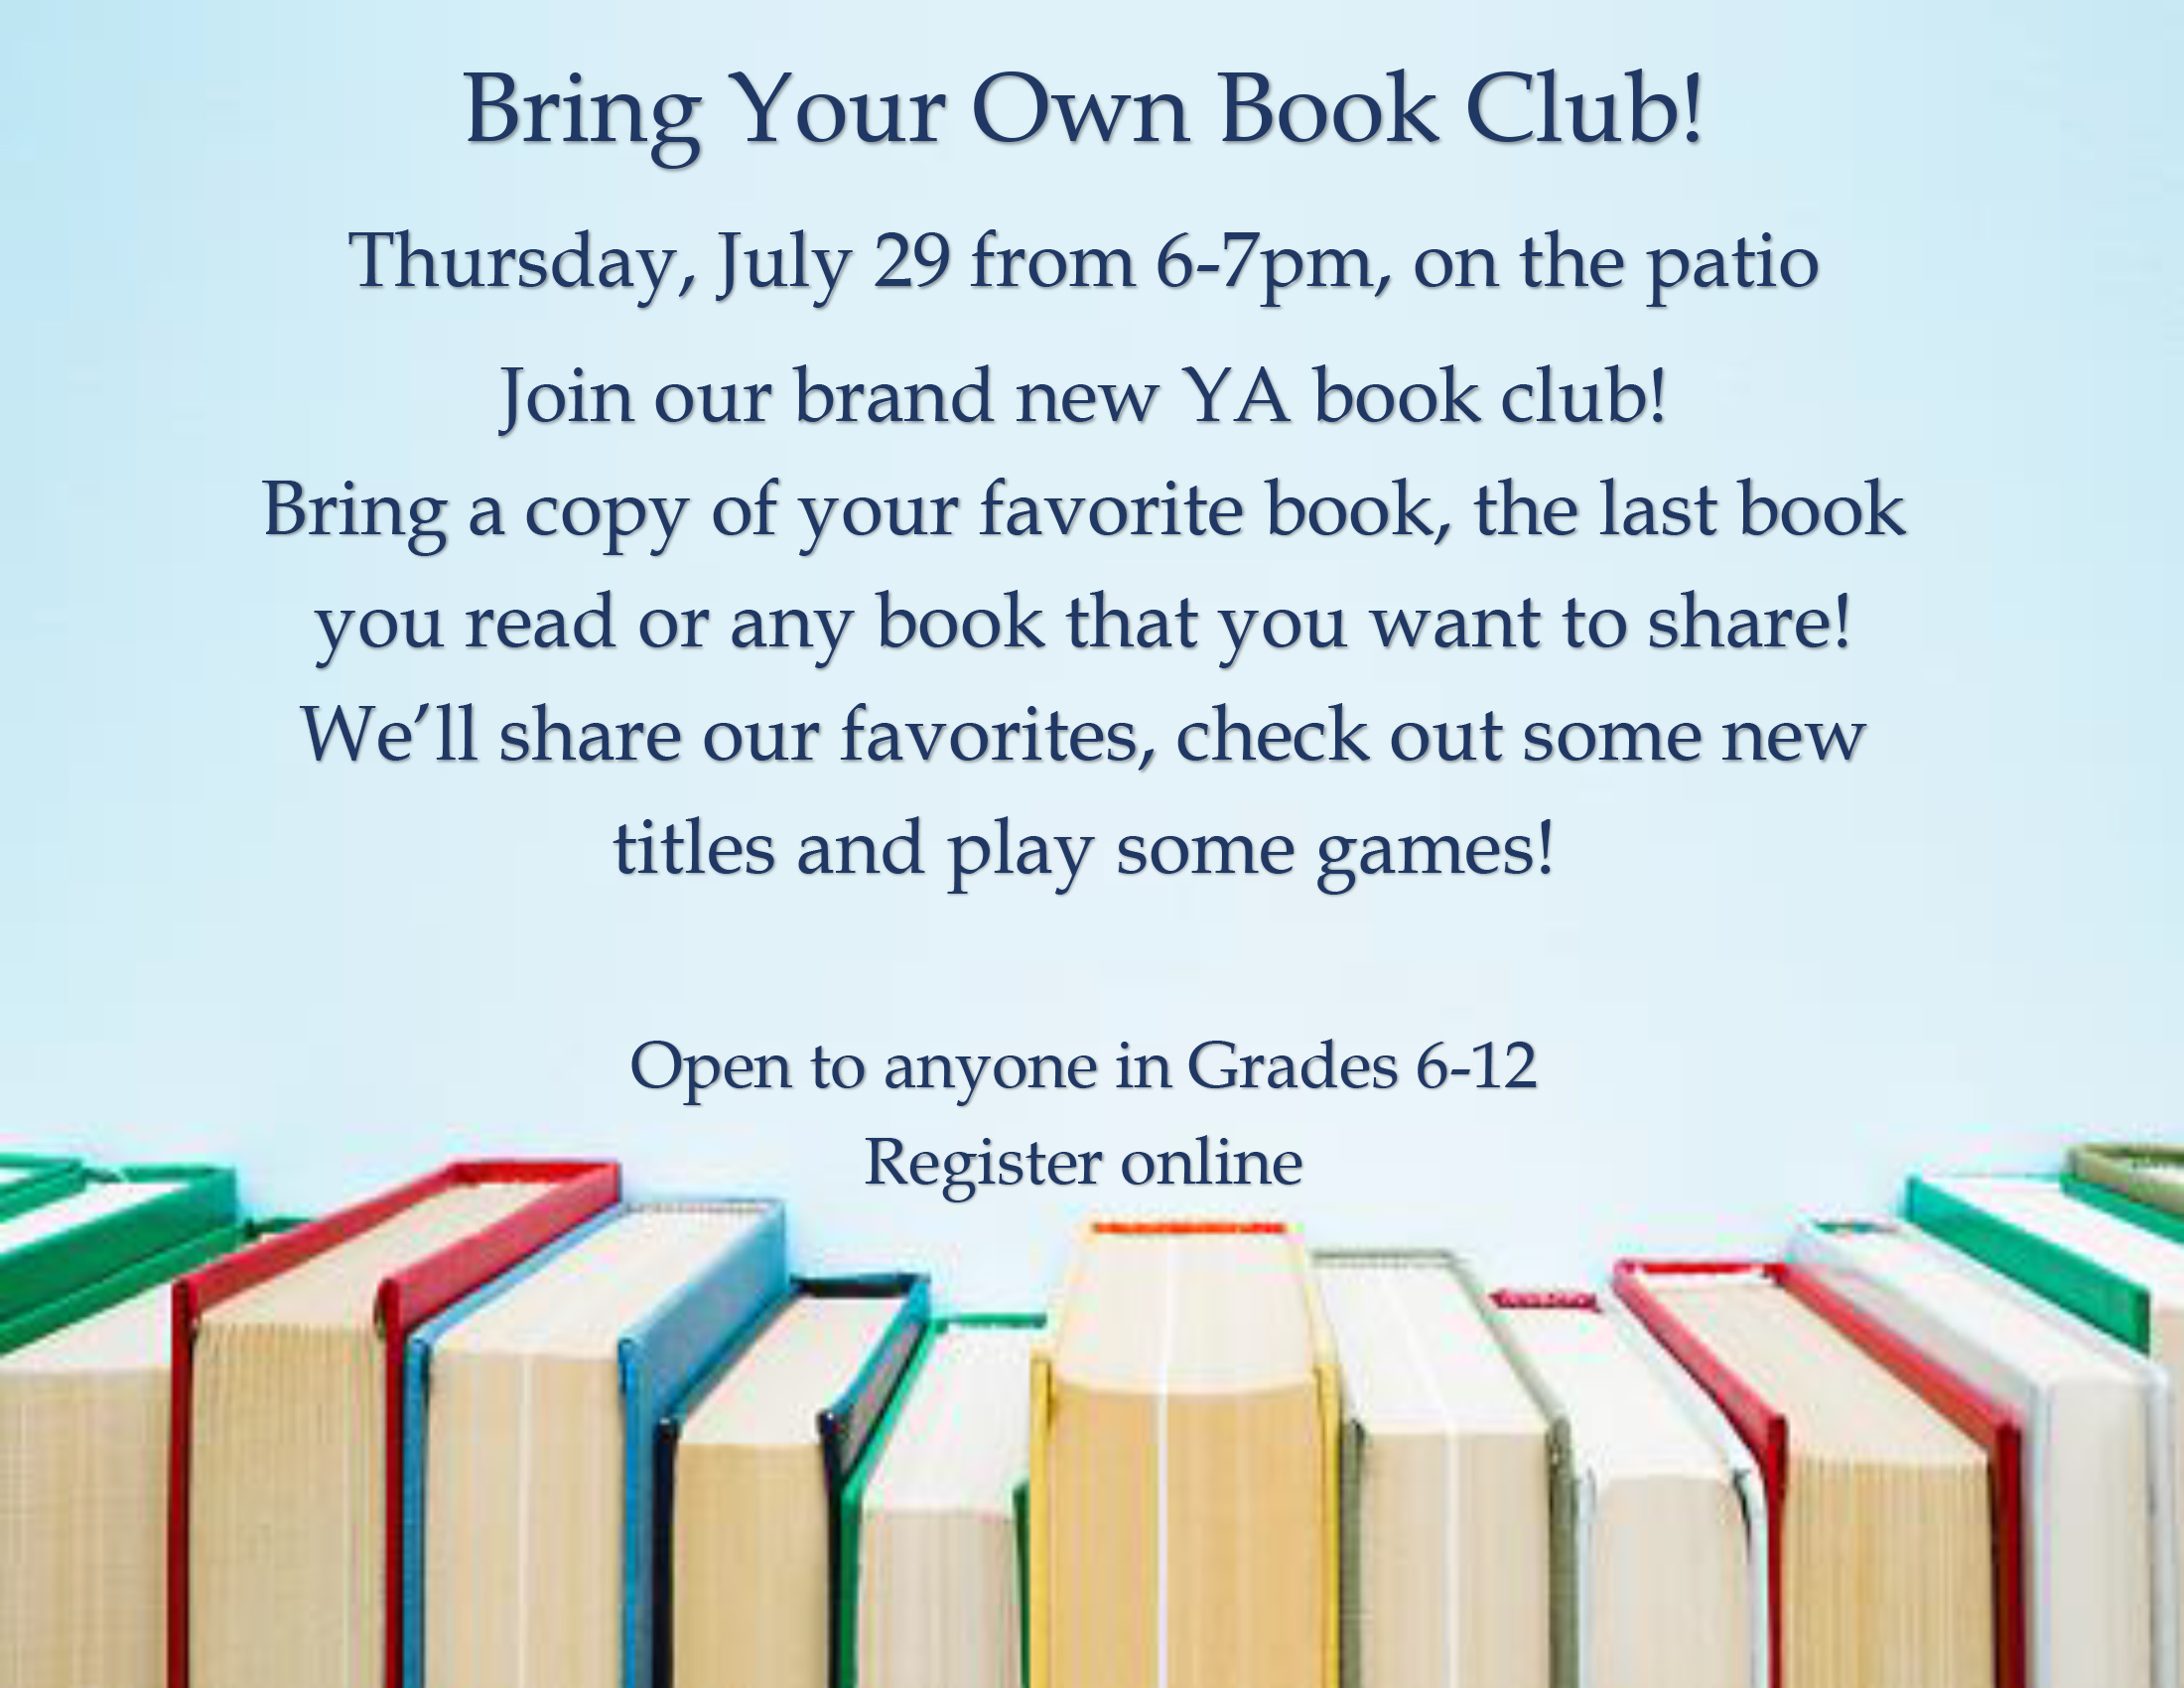 Bring your own book club flyer